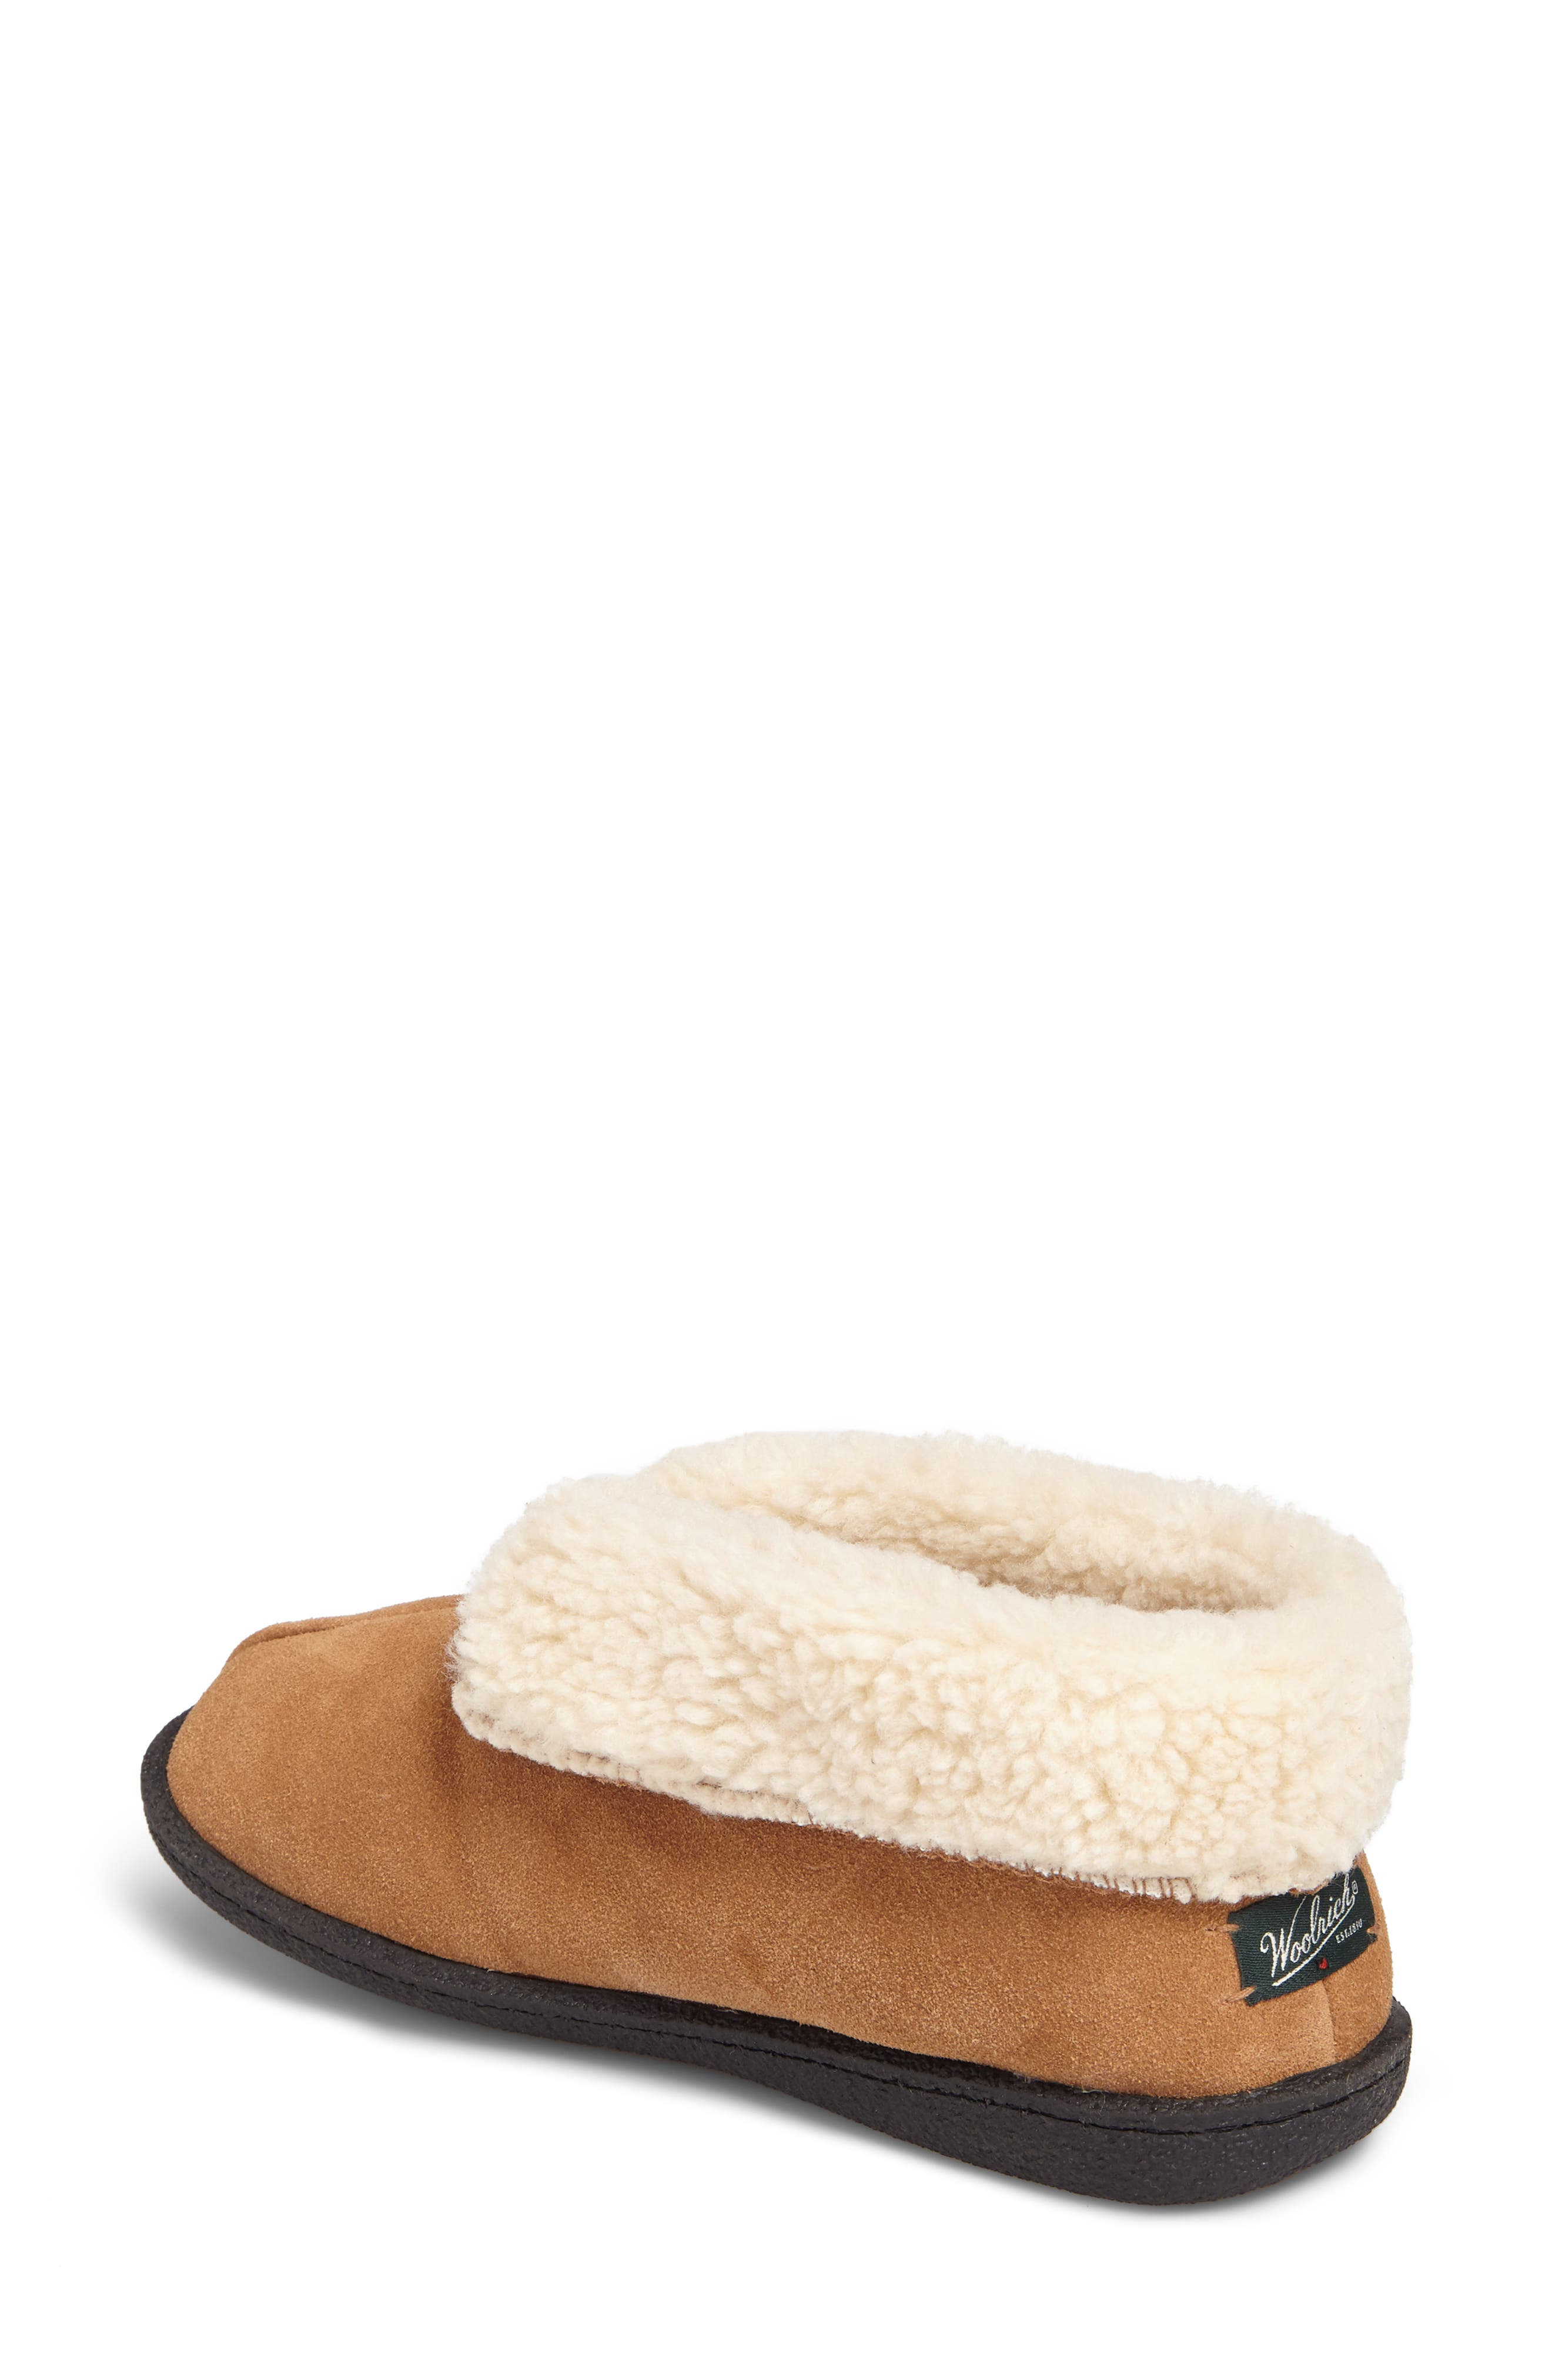 Lodge II Slipper,                             Alternate thumbnail 2, color,                             Chestnut